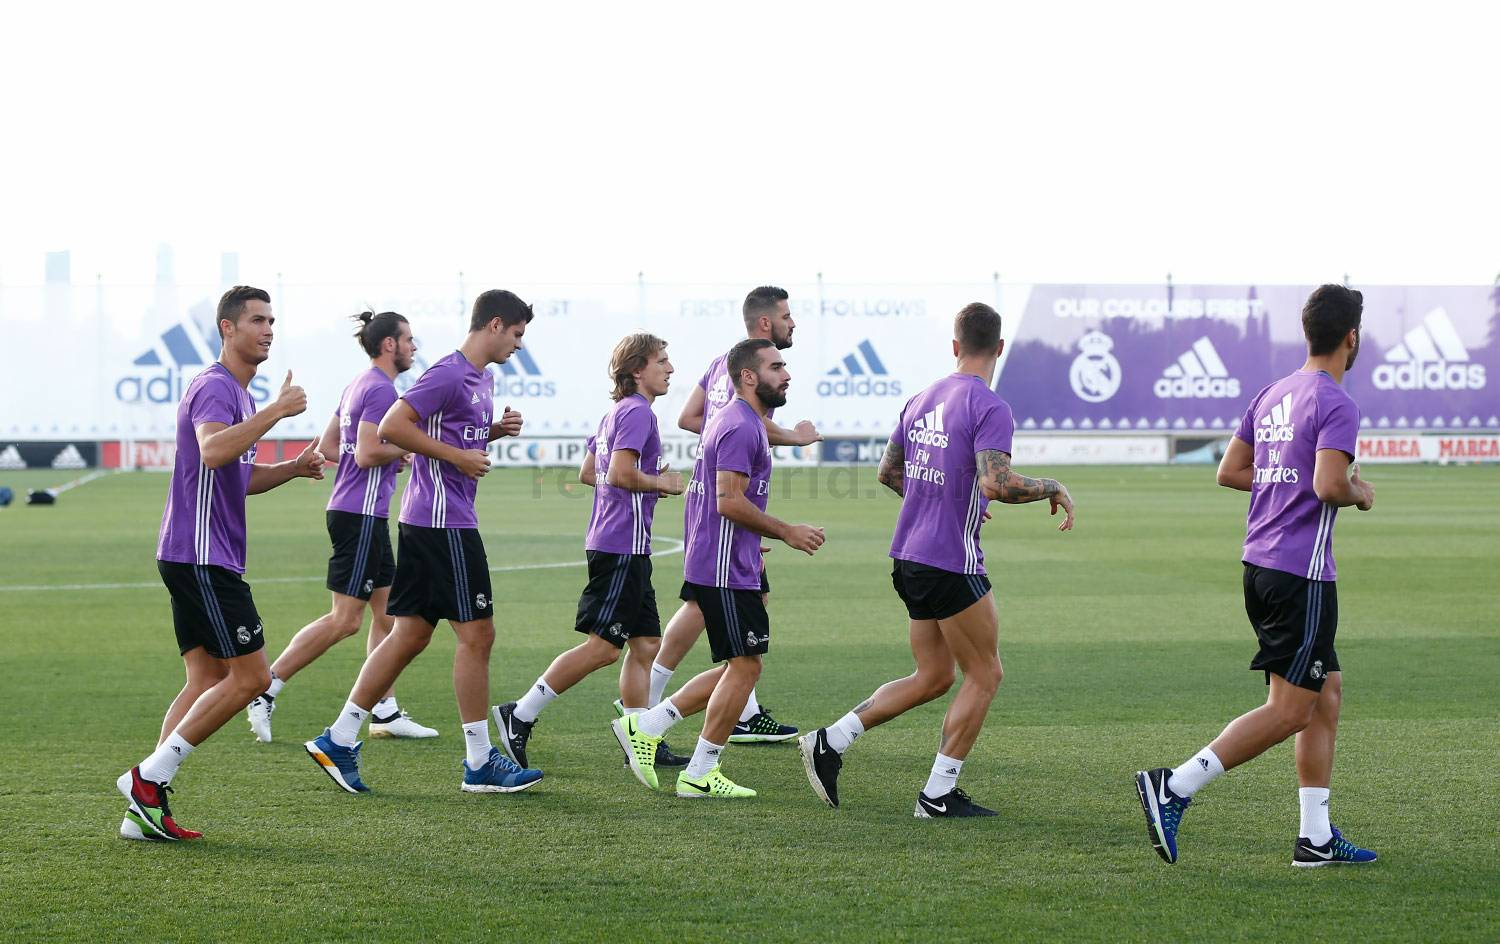 Real Madrid - Entrenamiento del Real Madrid - 25-09-2016